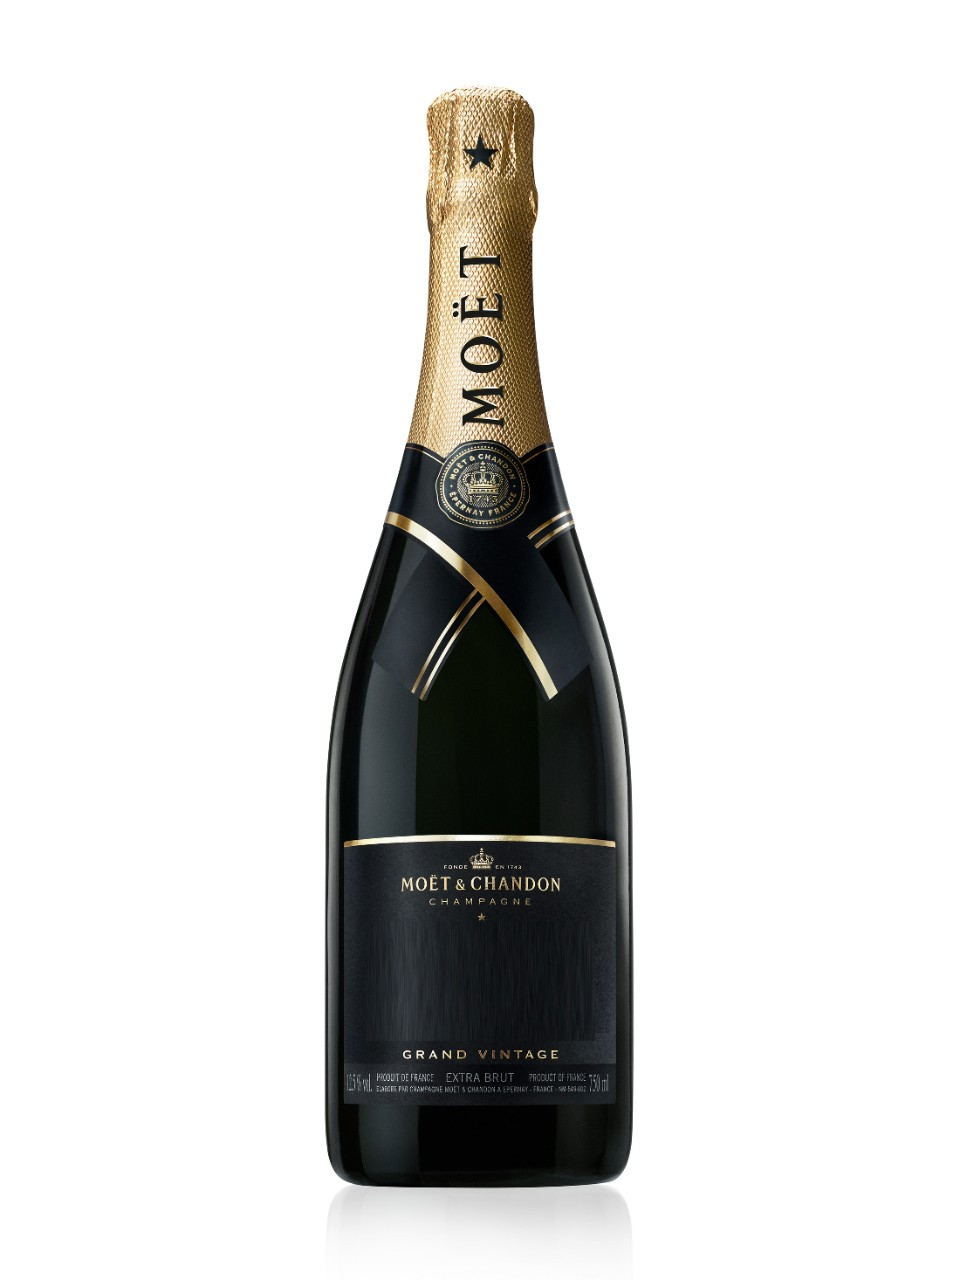 Image for Moët & Chandon Grand Vintage Extra Brut Champagne 2009 from LCBO